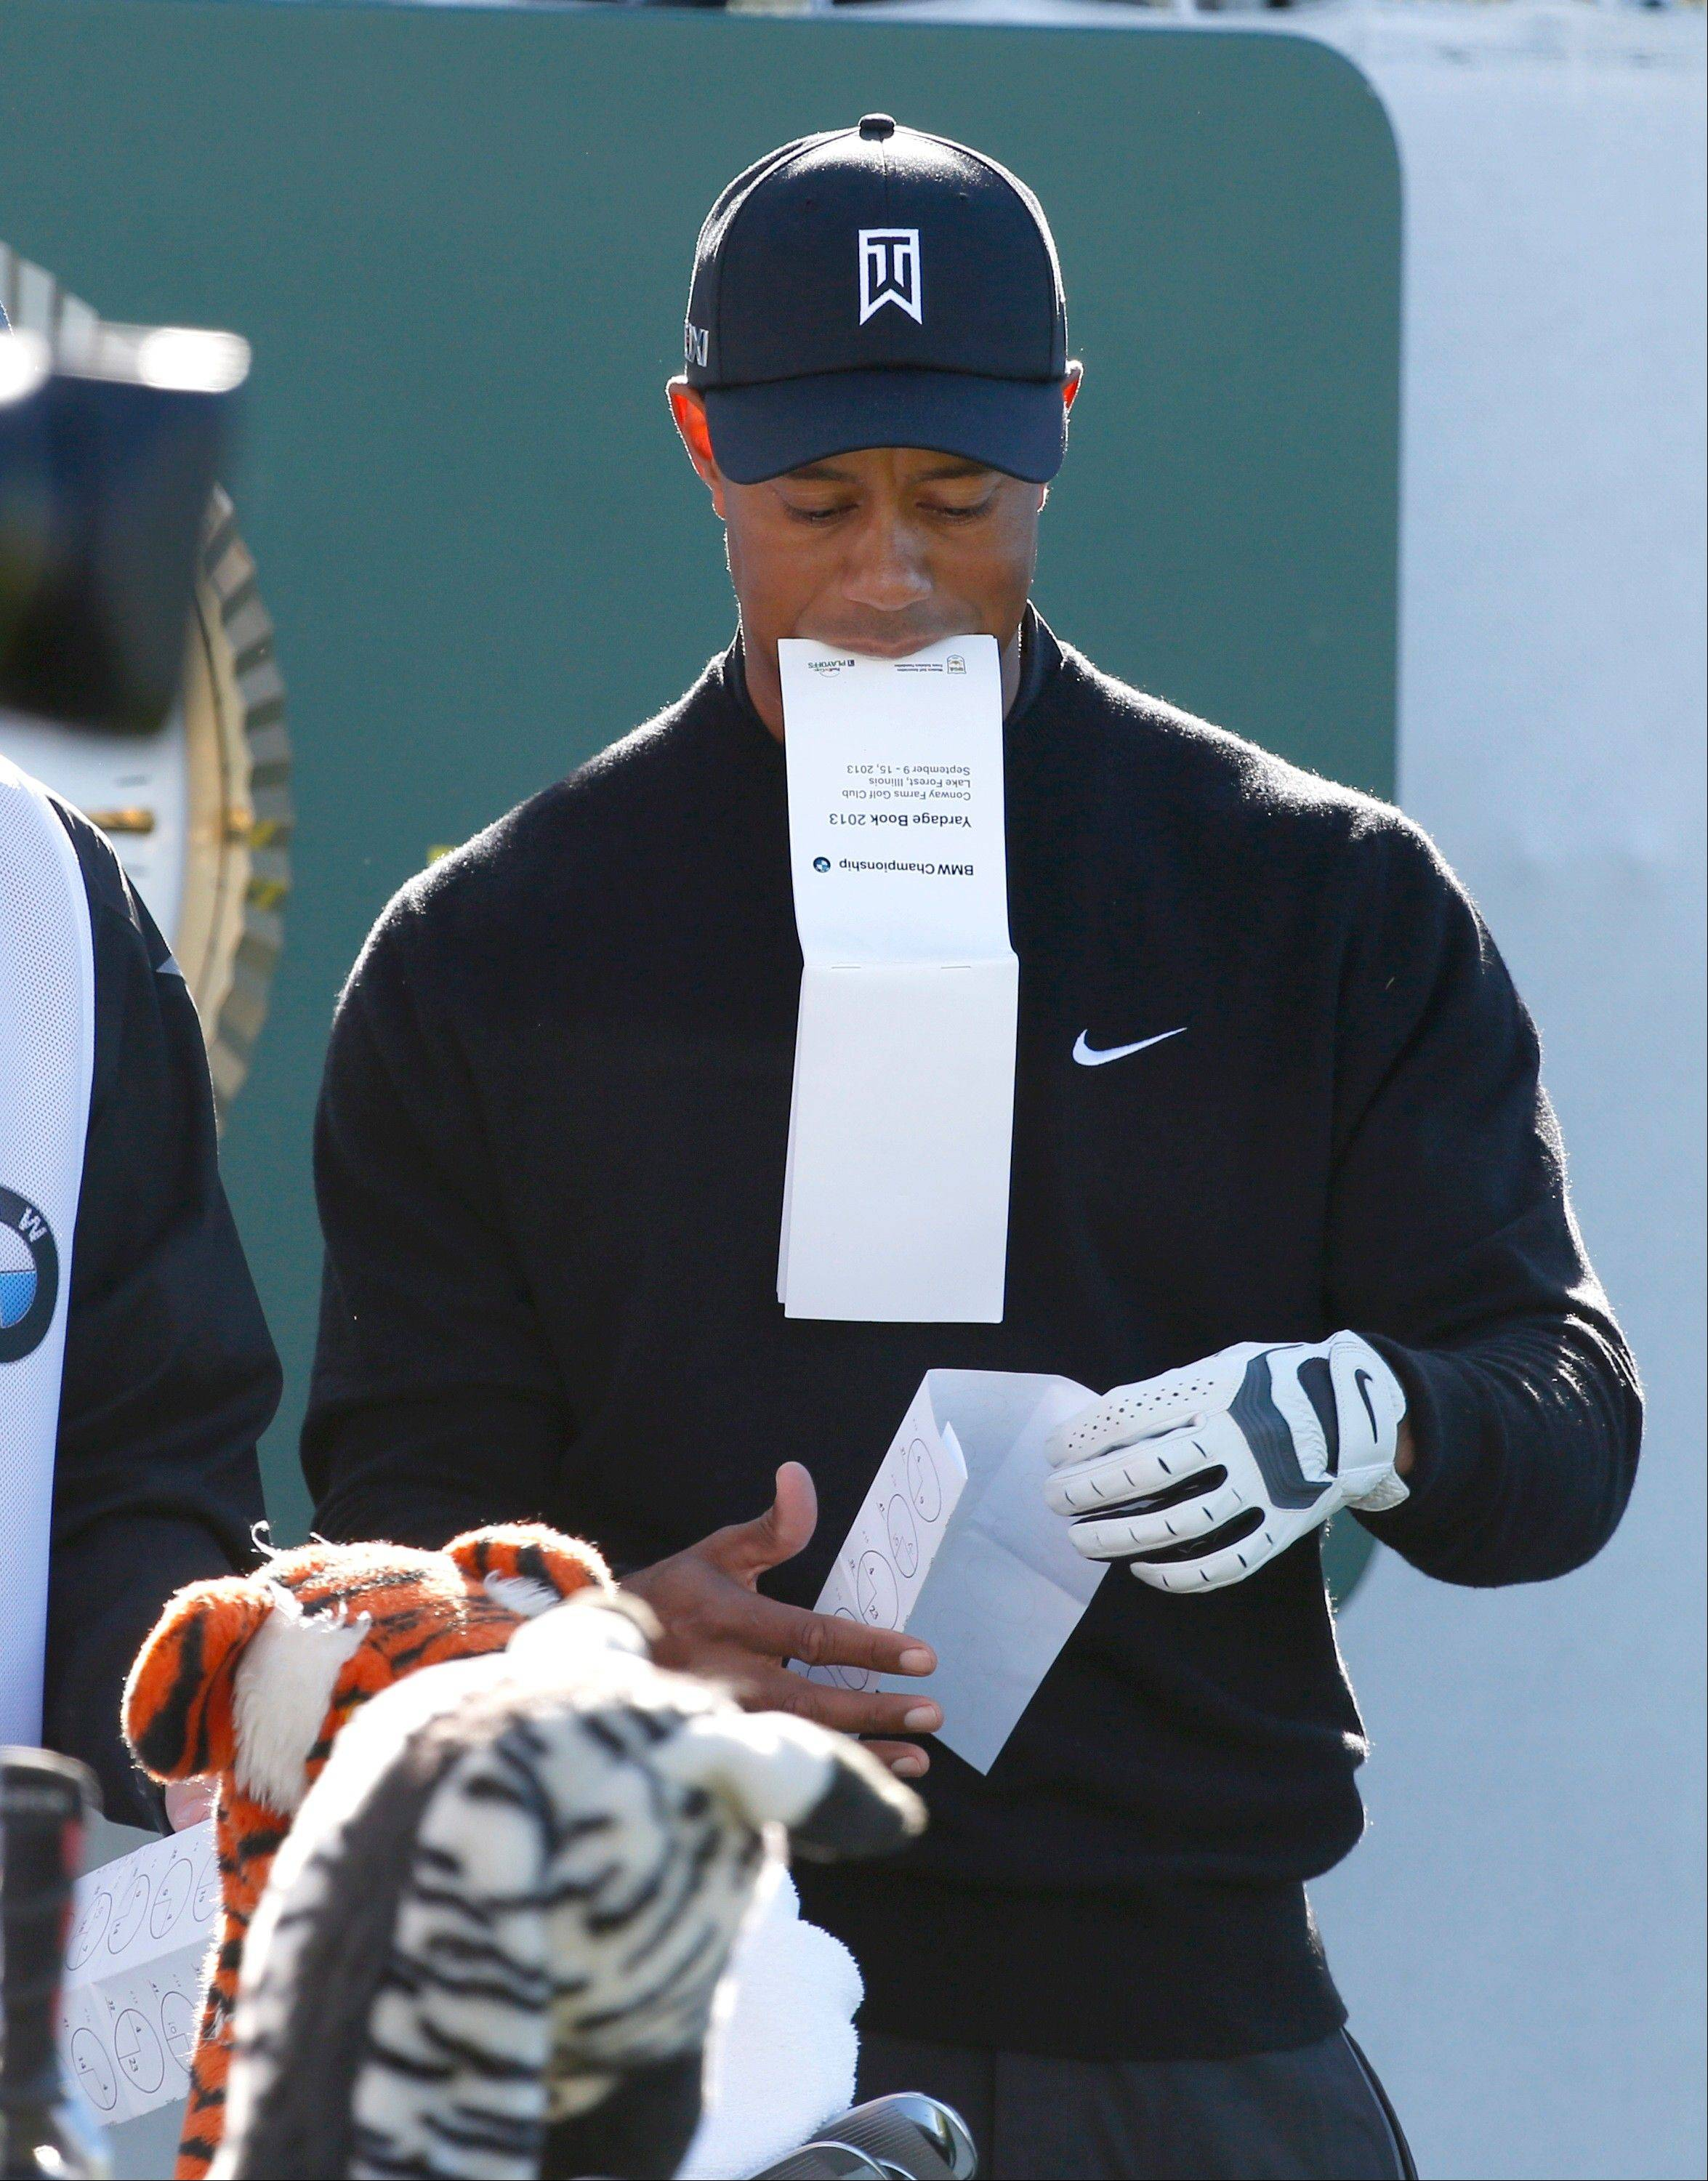 Tiger Woods prepares on the 1st tee for the final round.